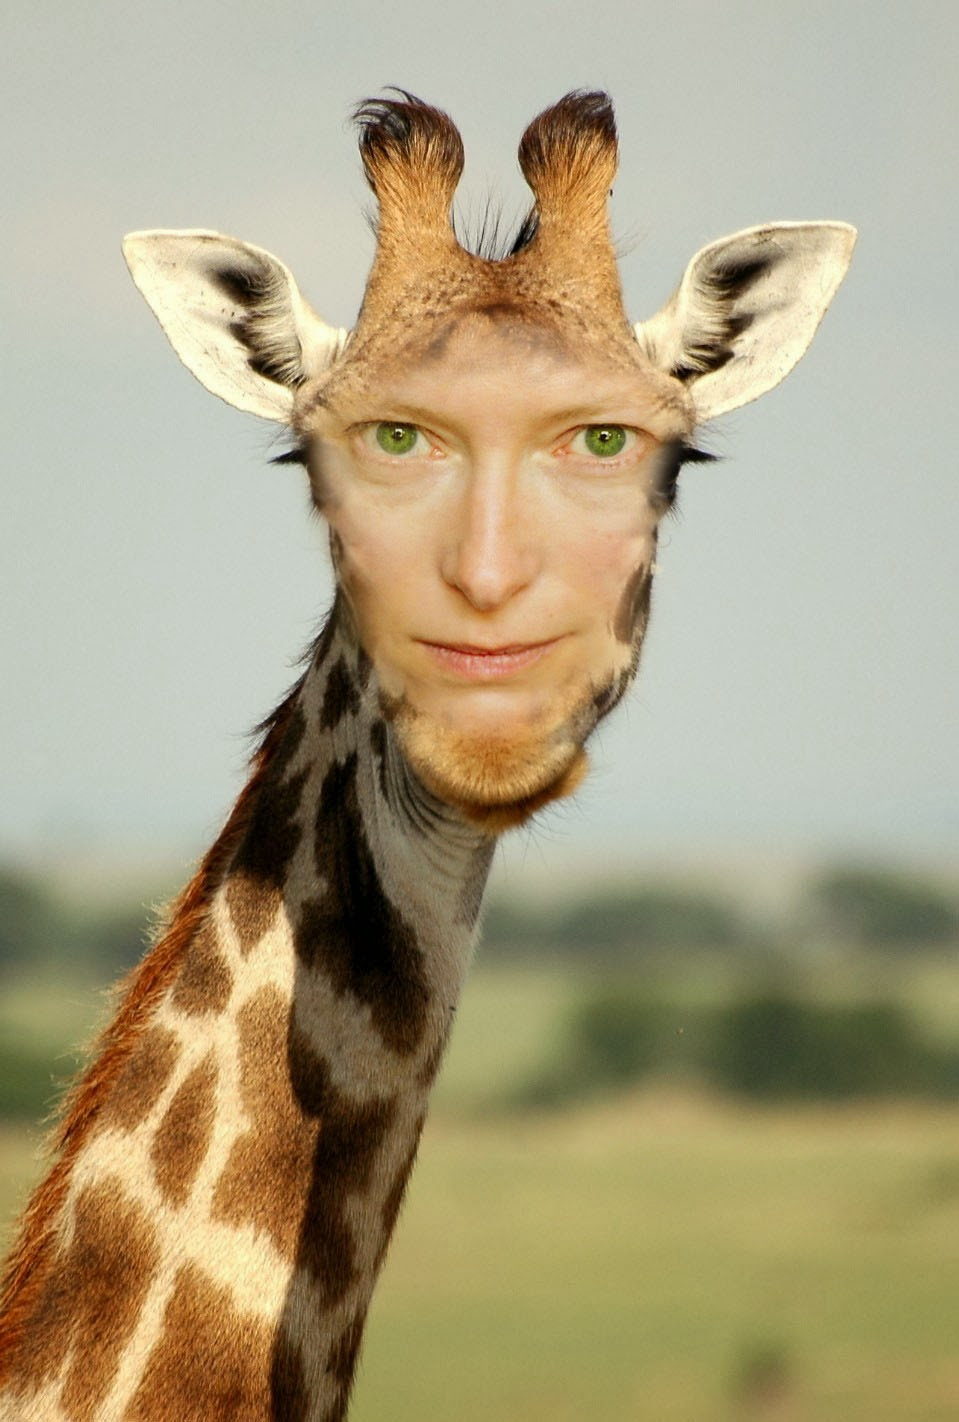 tilda-swinton-animal, tilda-swinton-long-neck, ossicones, giraffe, human-giraffe